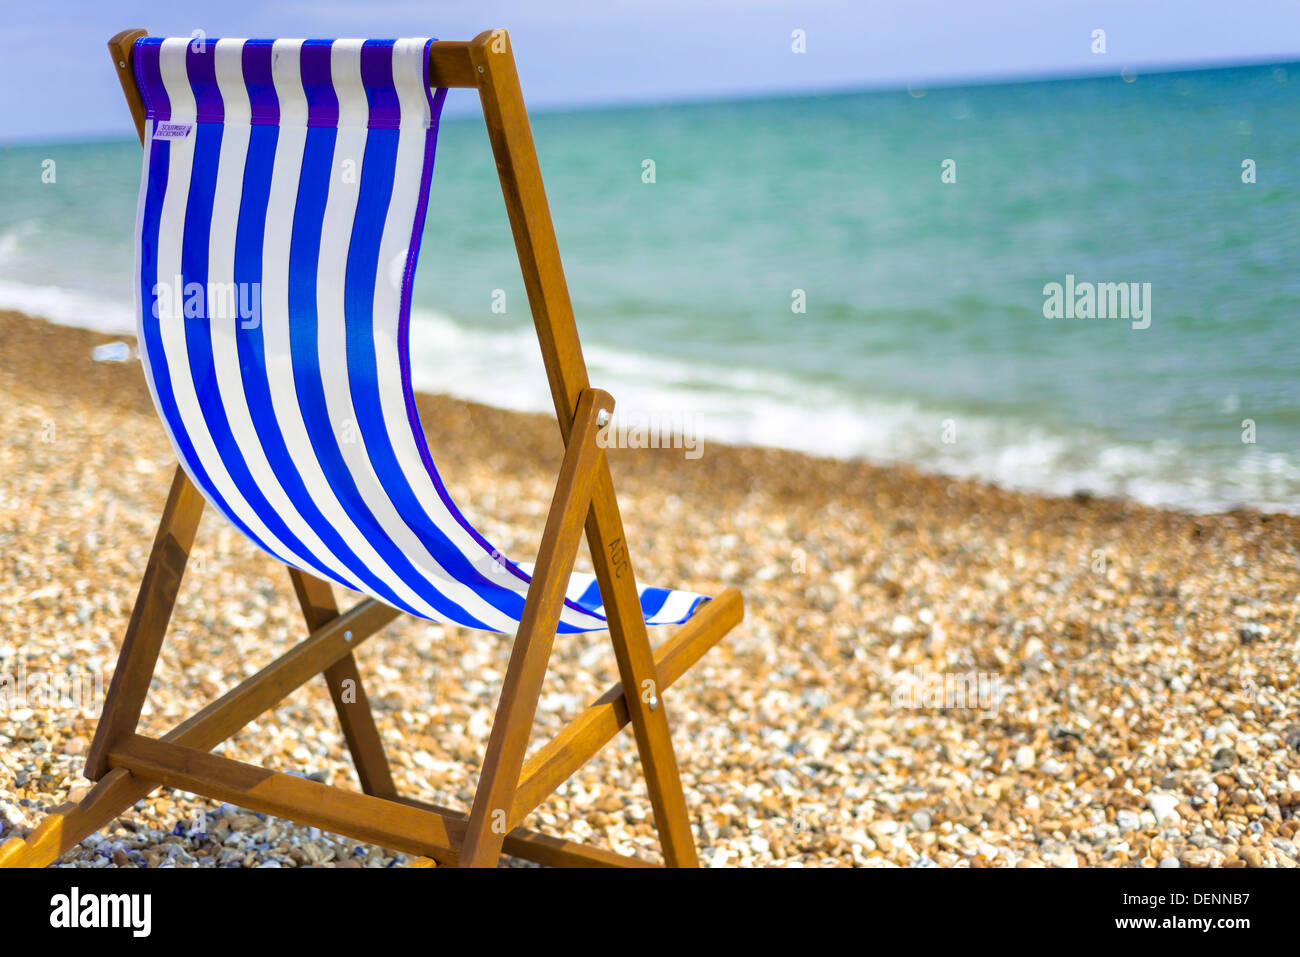 chair cover hire west sussex retro kitchen table and chairs yellow regis deck on beach stock photos